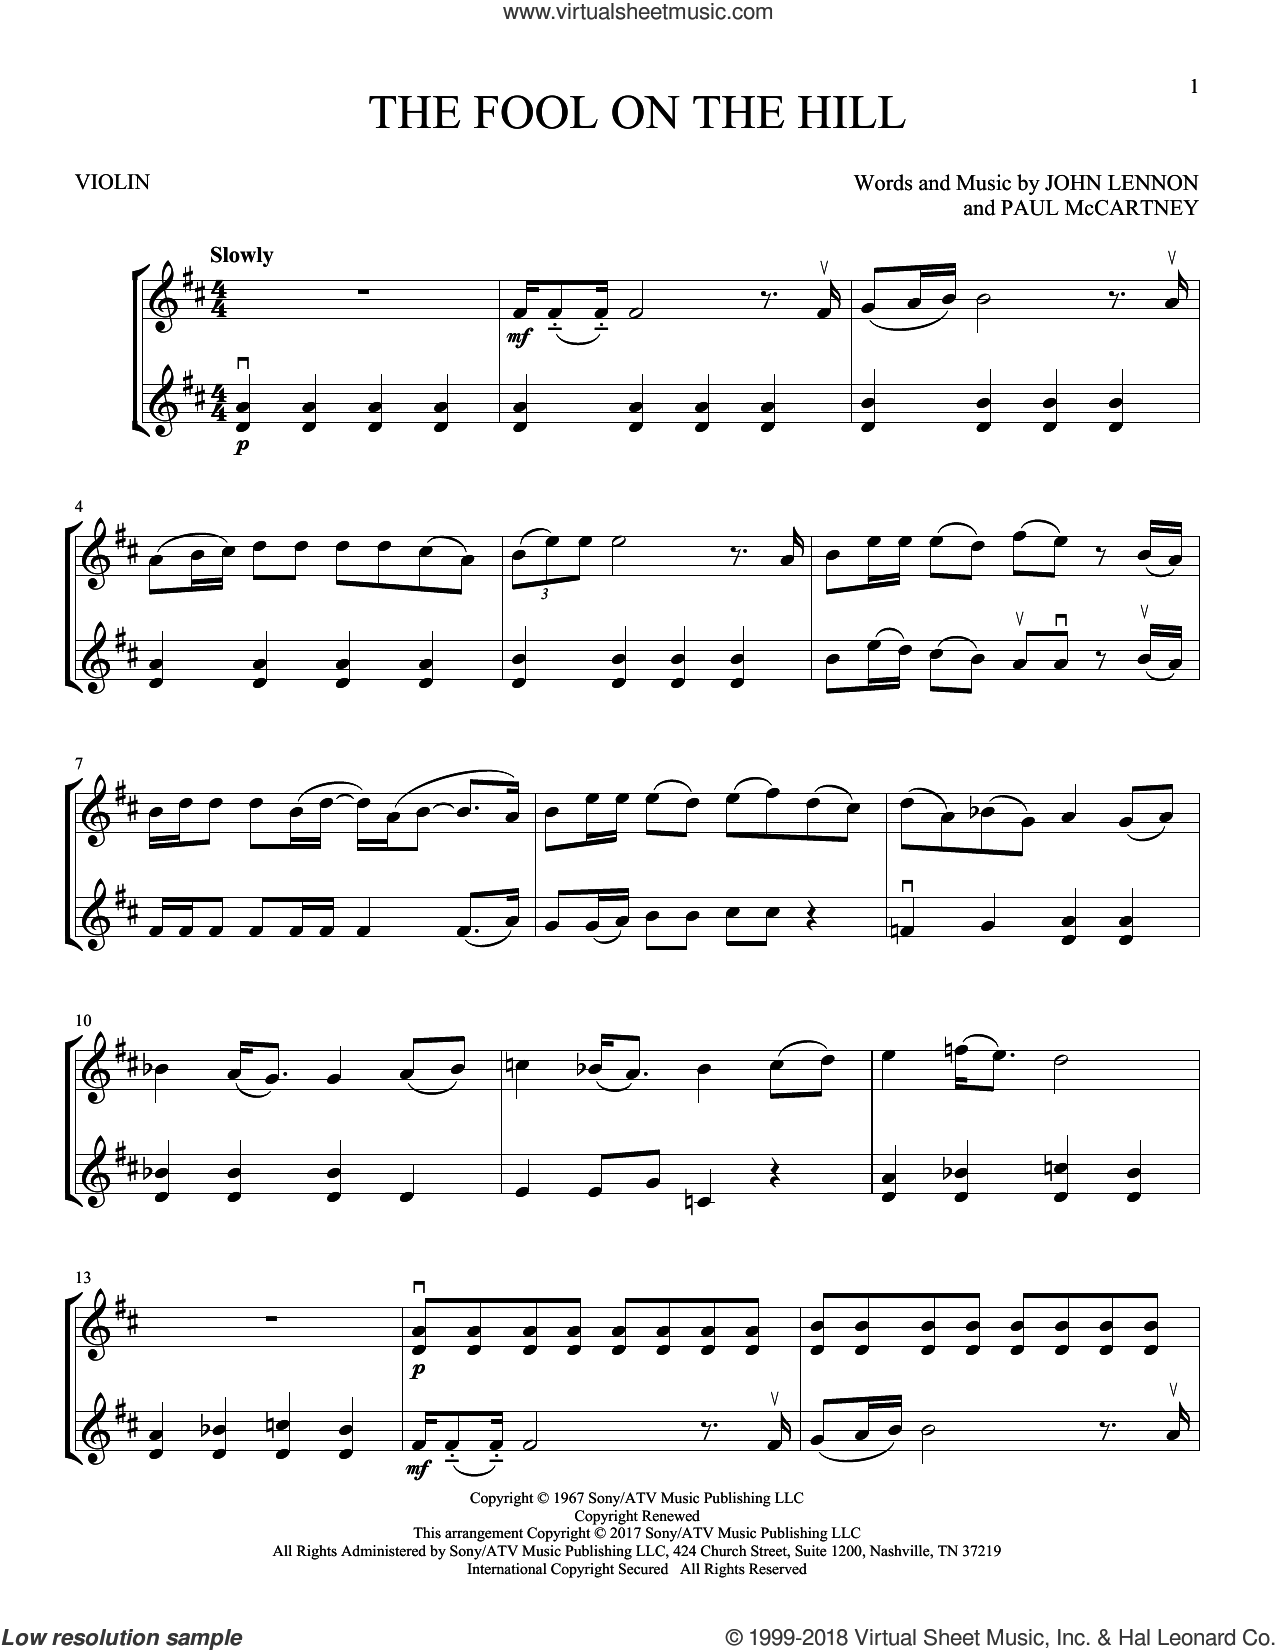 The Fool On The Hill sheet music for two violins (duets, violin duets) by The Beatles, John Lennon and Paul McCartney, intermediate skill level